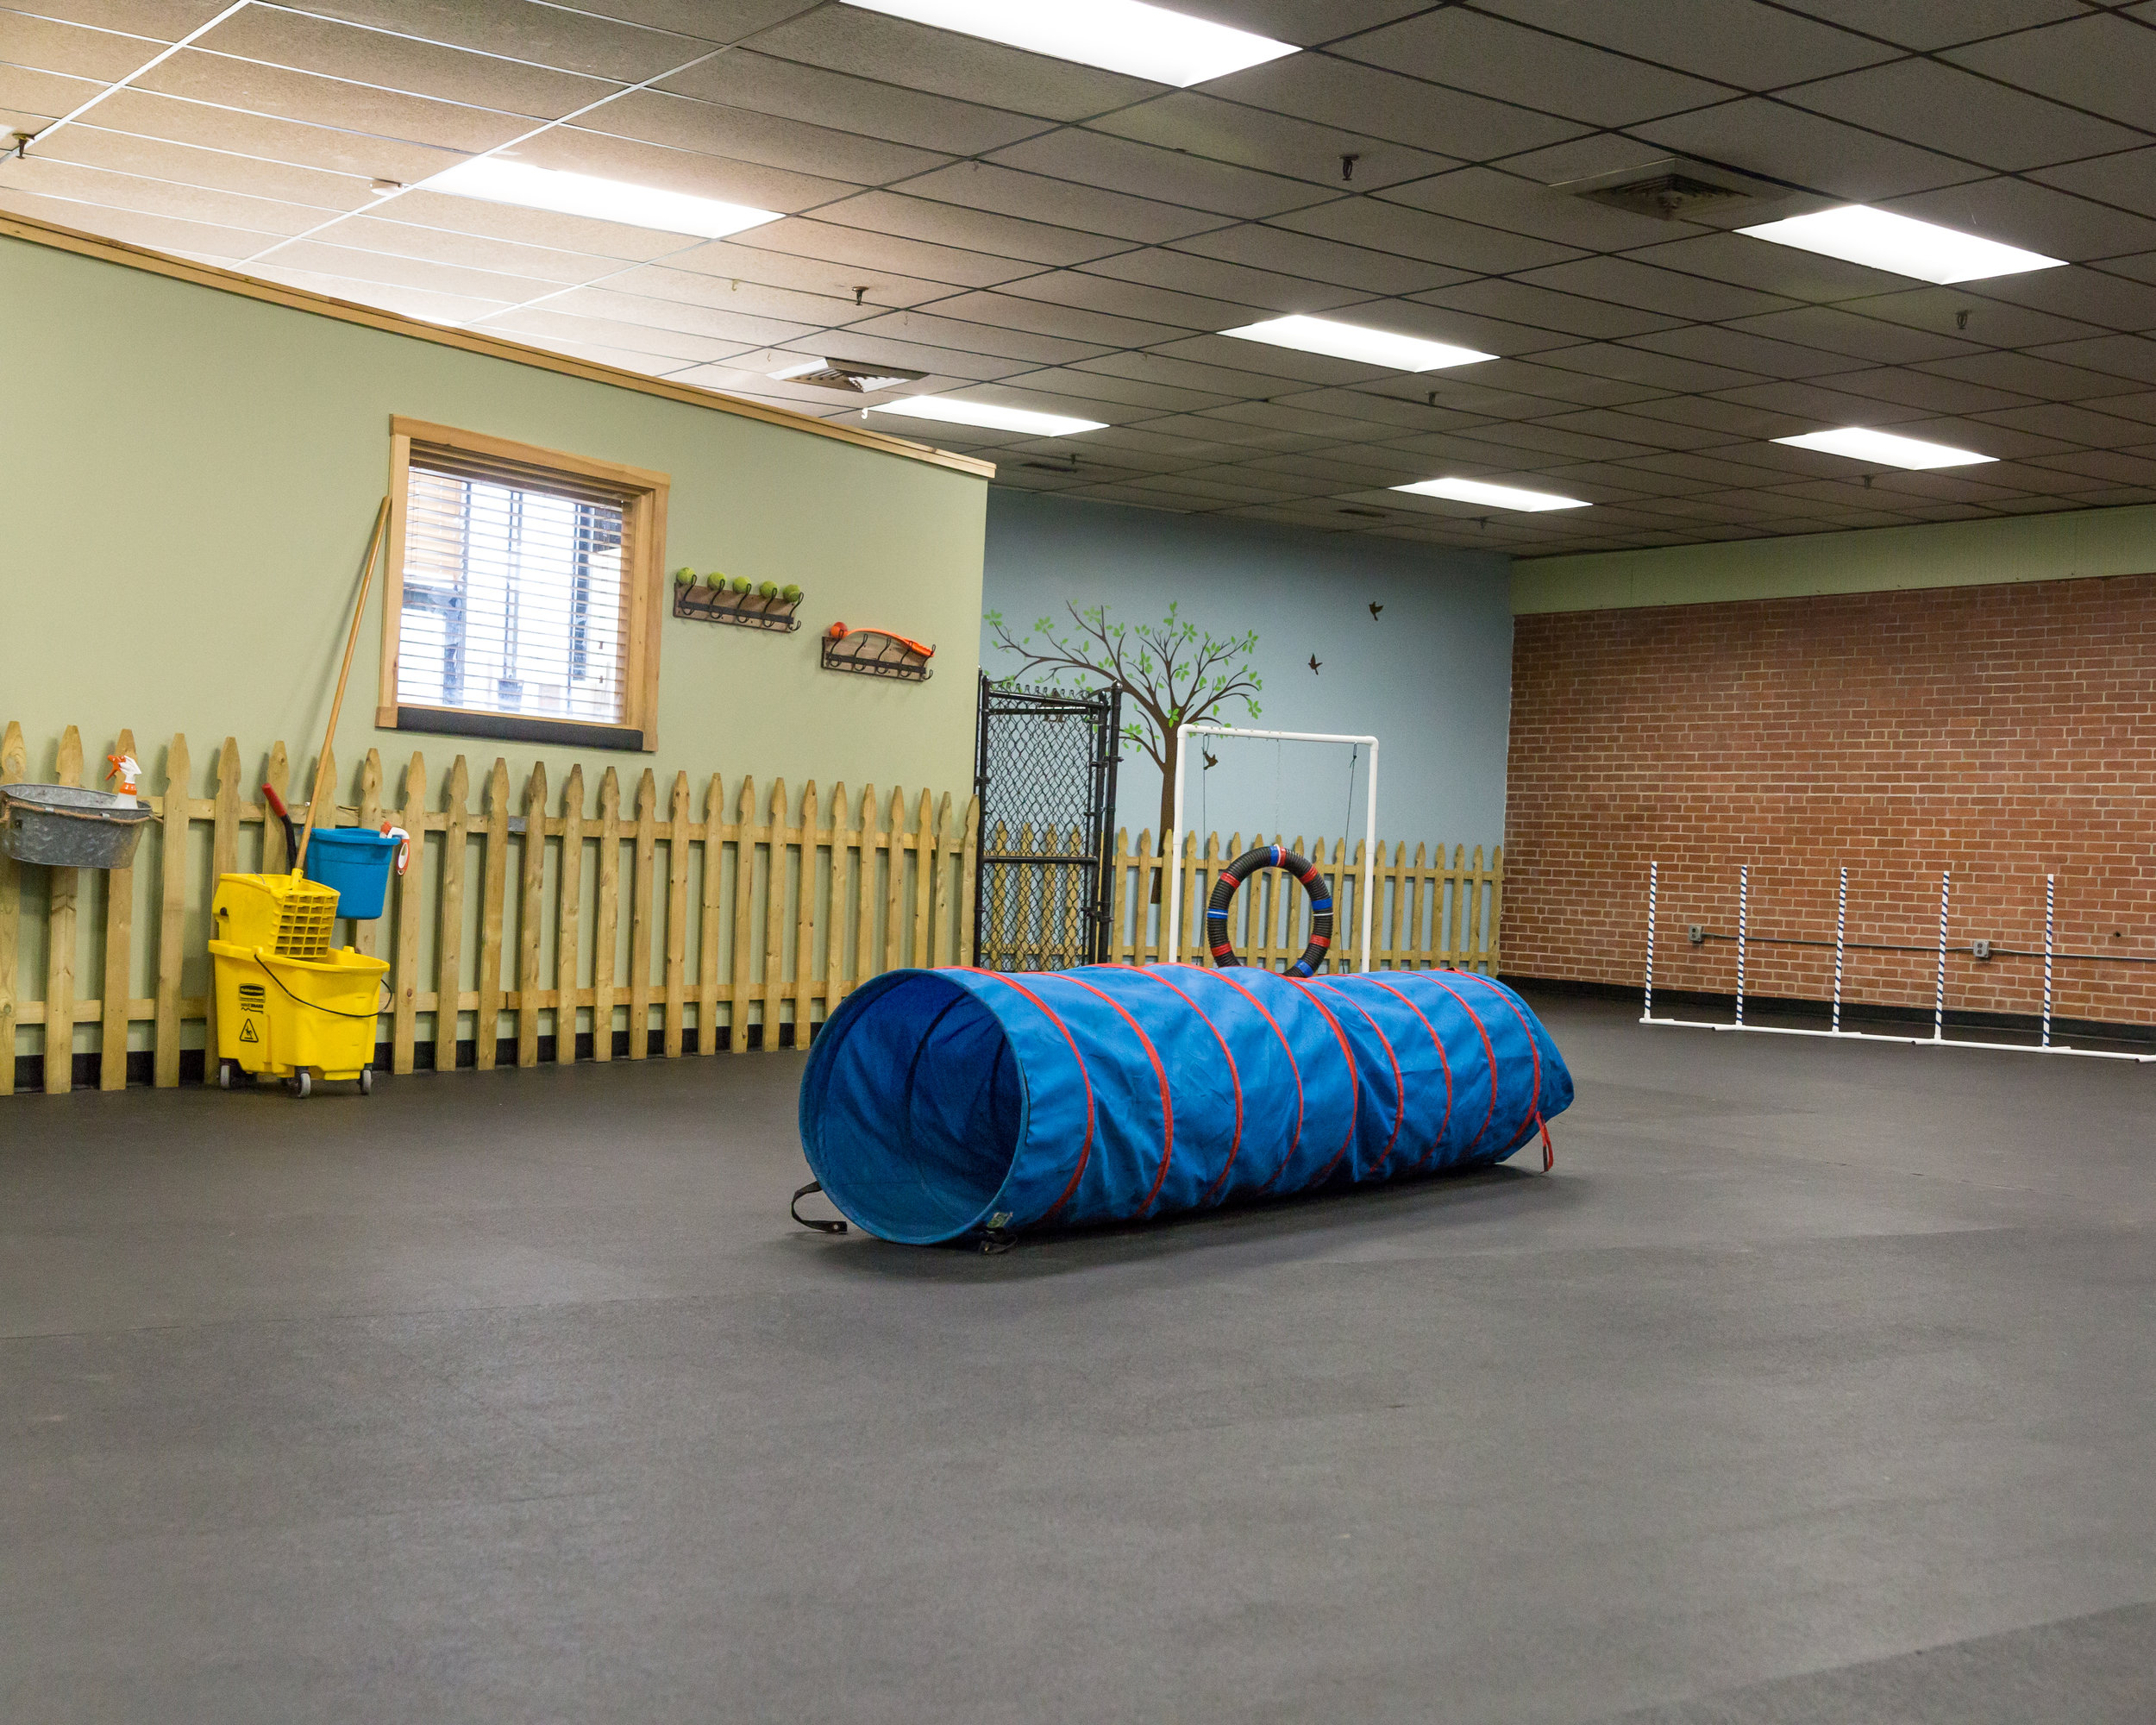 Fungility Gym at Camp K-9 where dogs can play and learn some agility tricks